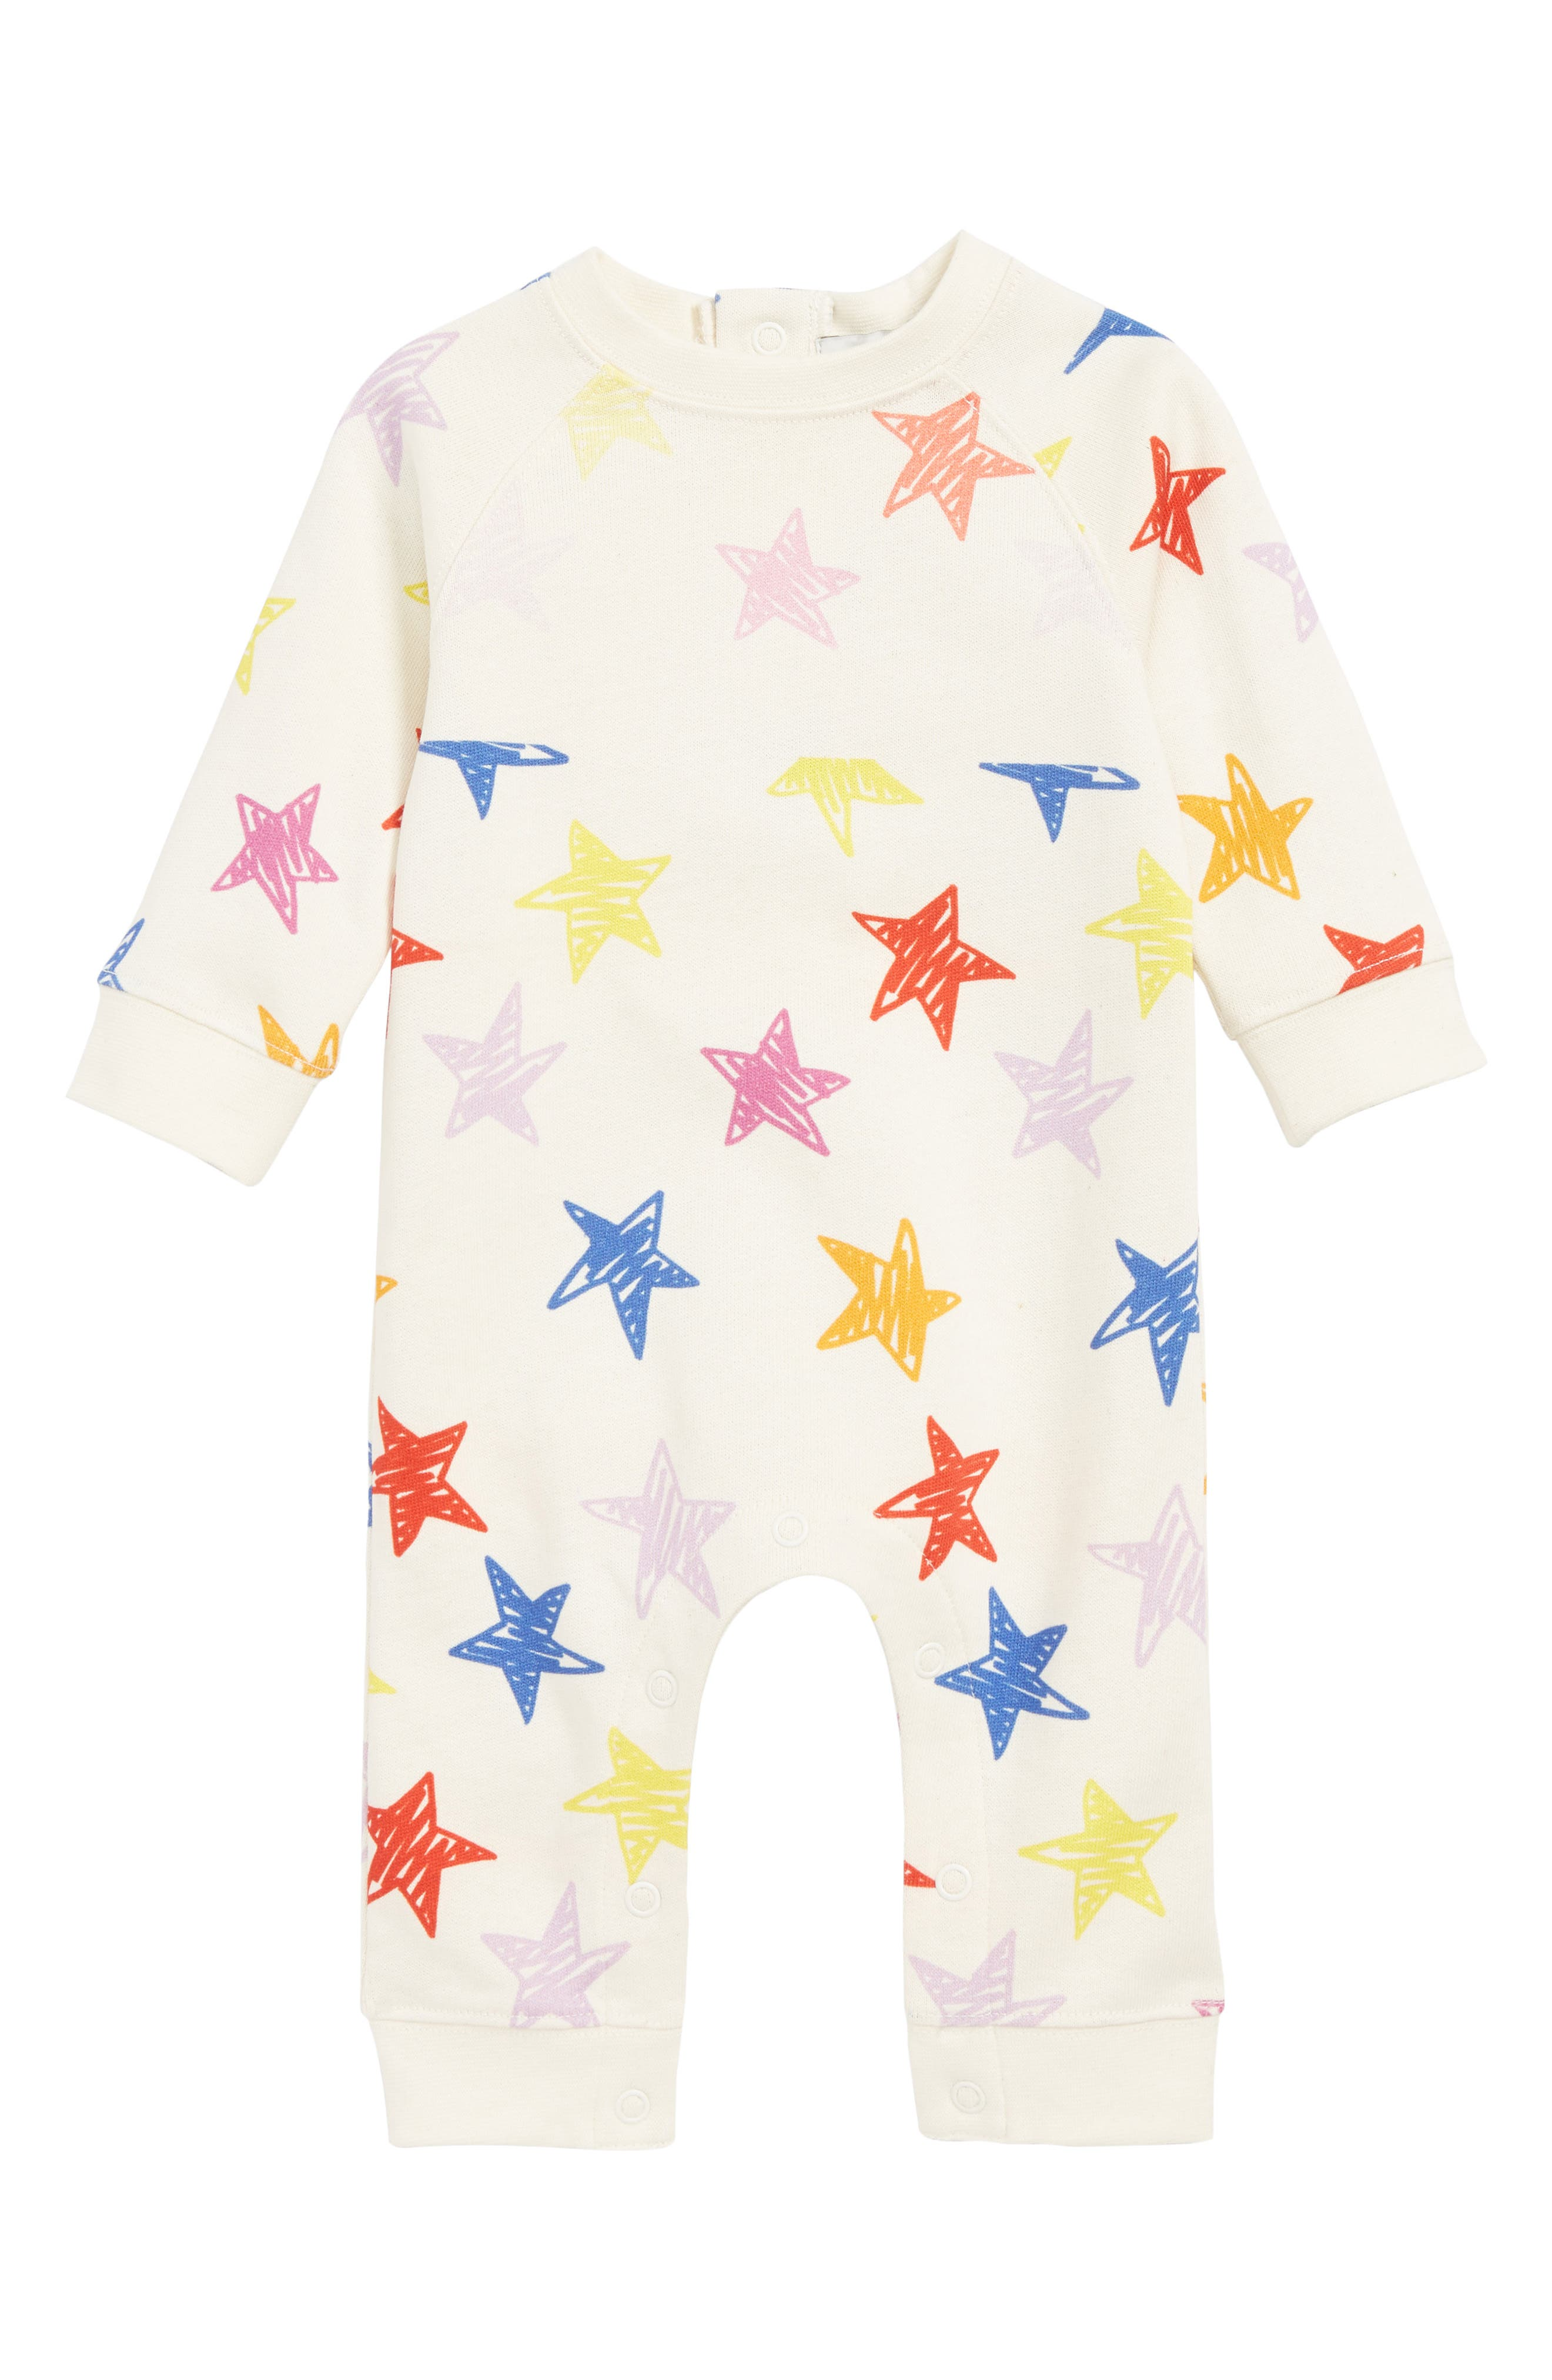 STELLA MCCARTNEY KIDS Stella McCartney Stars Print Cotton Romper, Main, color, 9088 MULTI